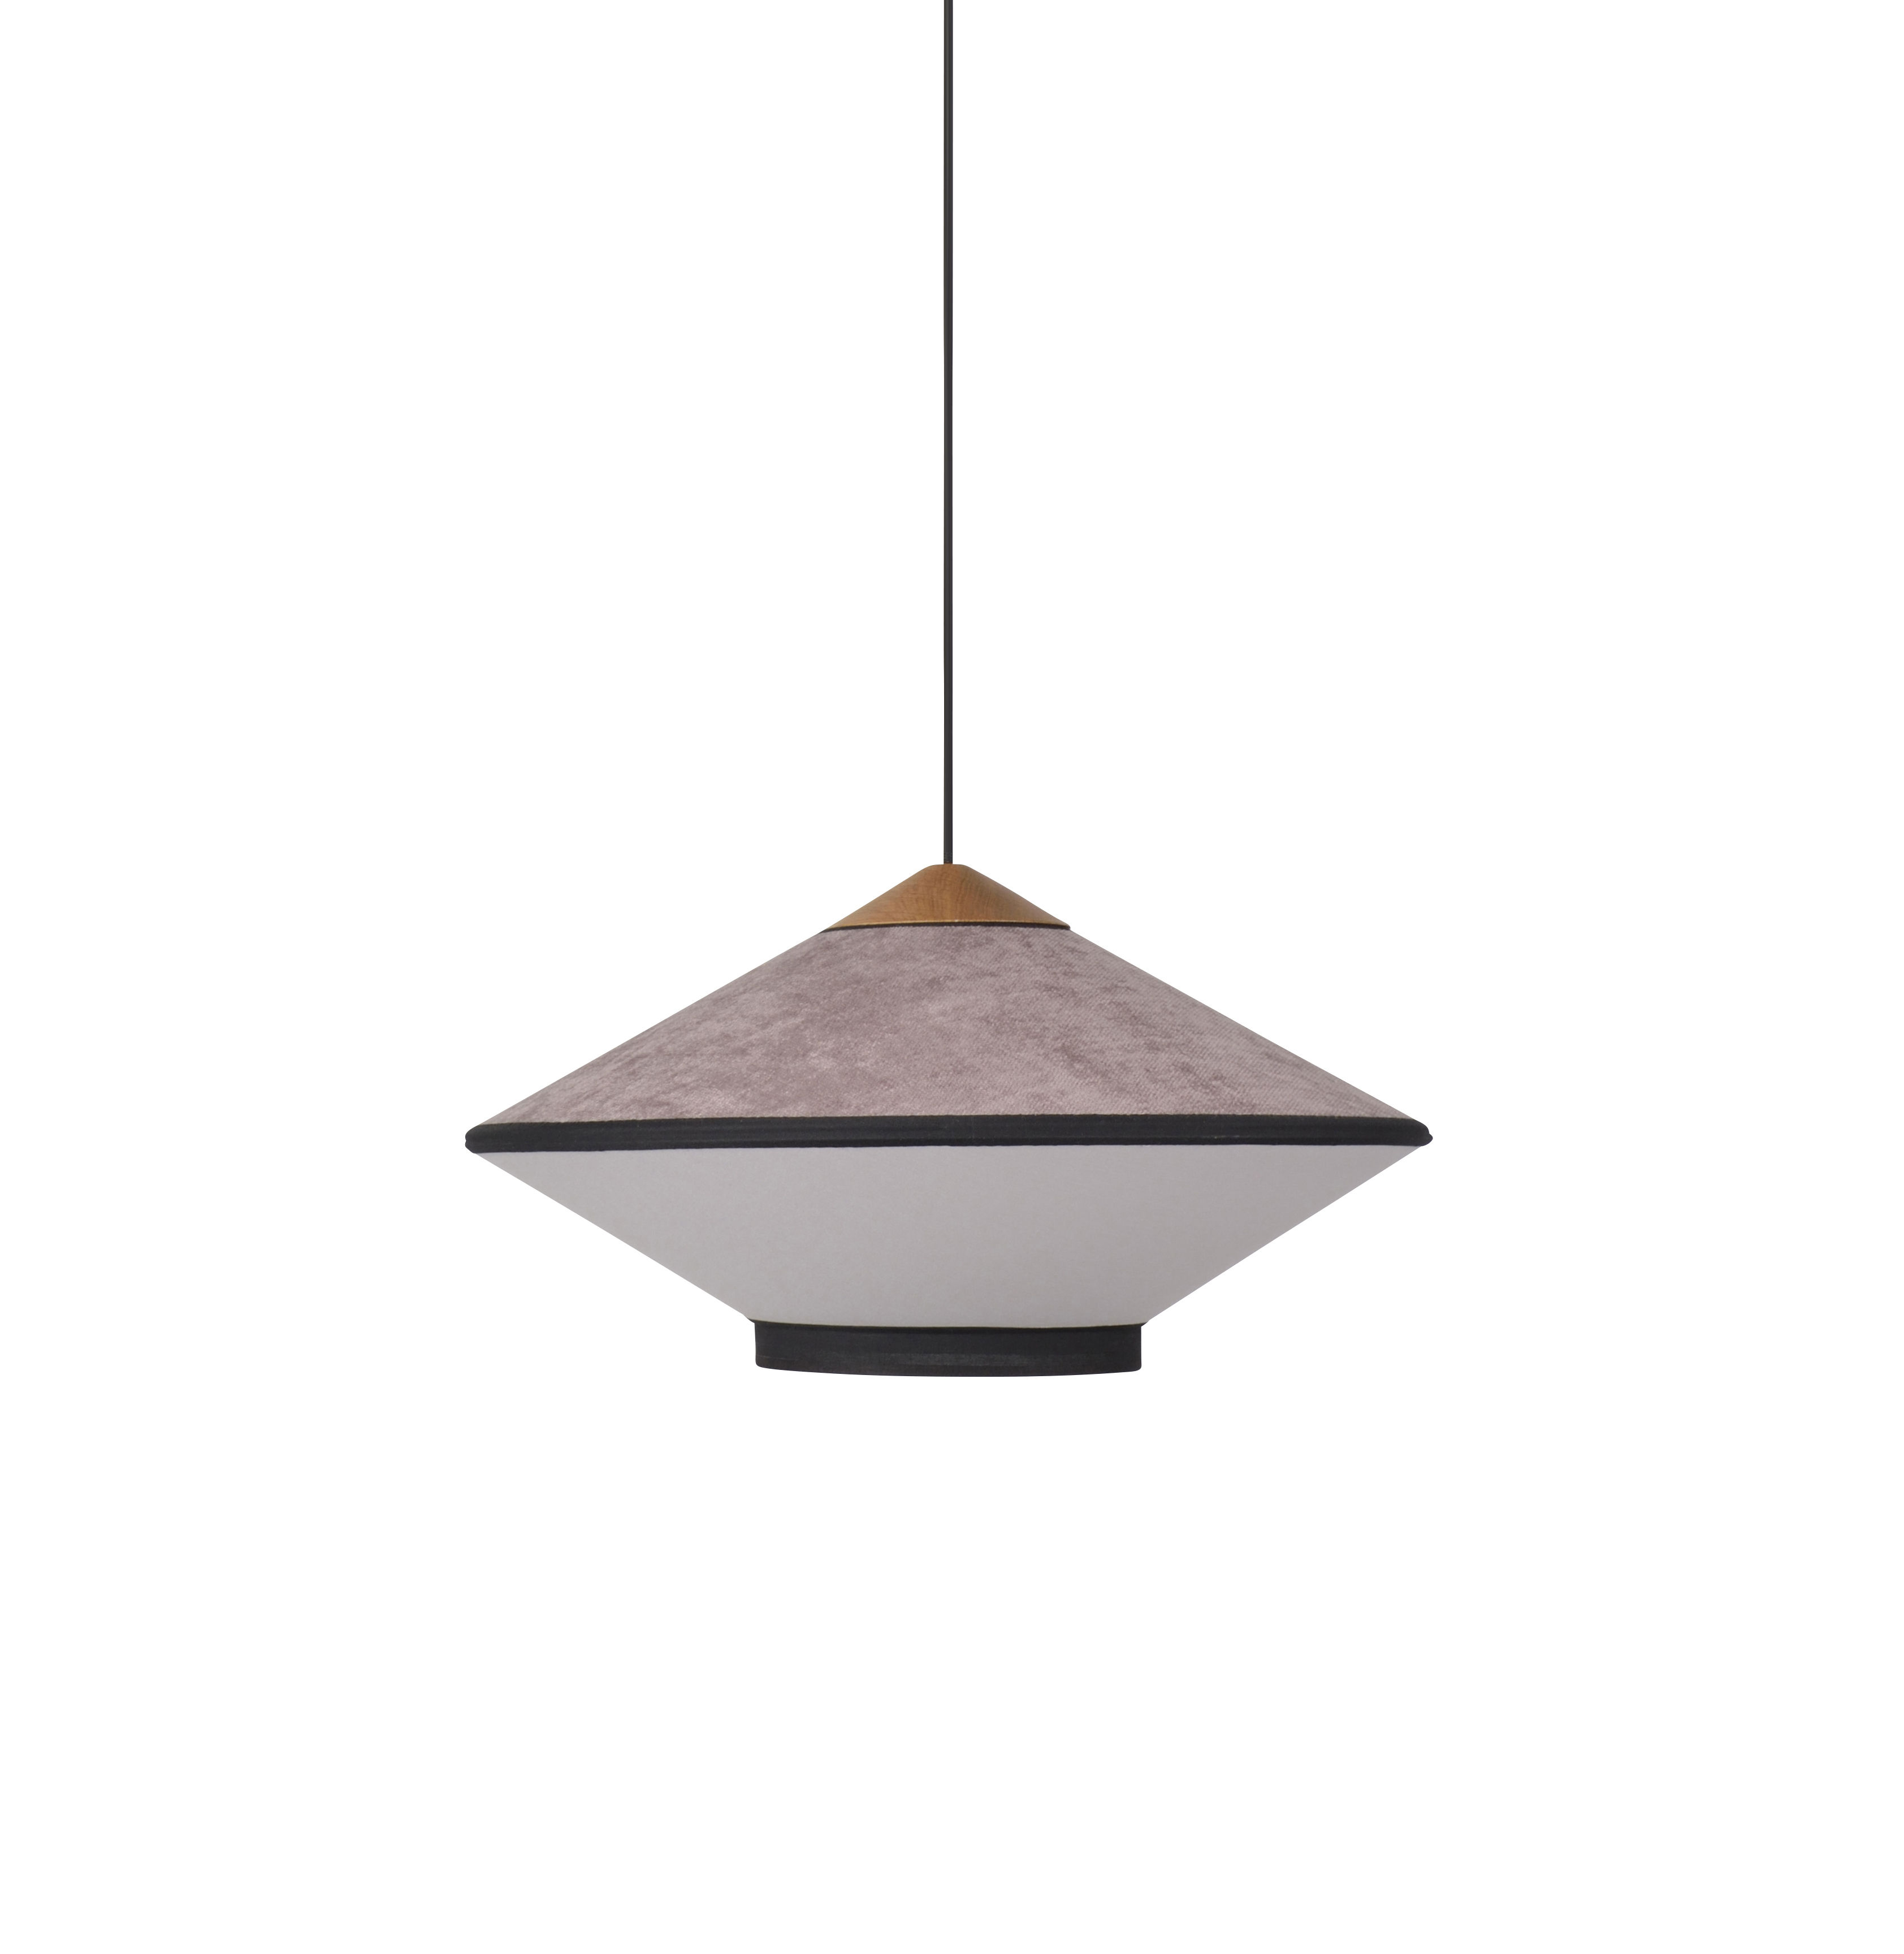 Luminaire - Suspensions - Suspension Cymbal Small / Ø 50 - Velours - Forestier - Rose Poudré - Chêne, Tissu, Velours